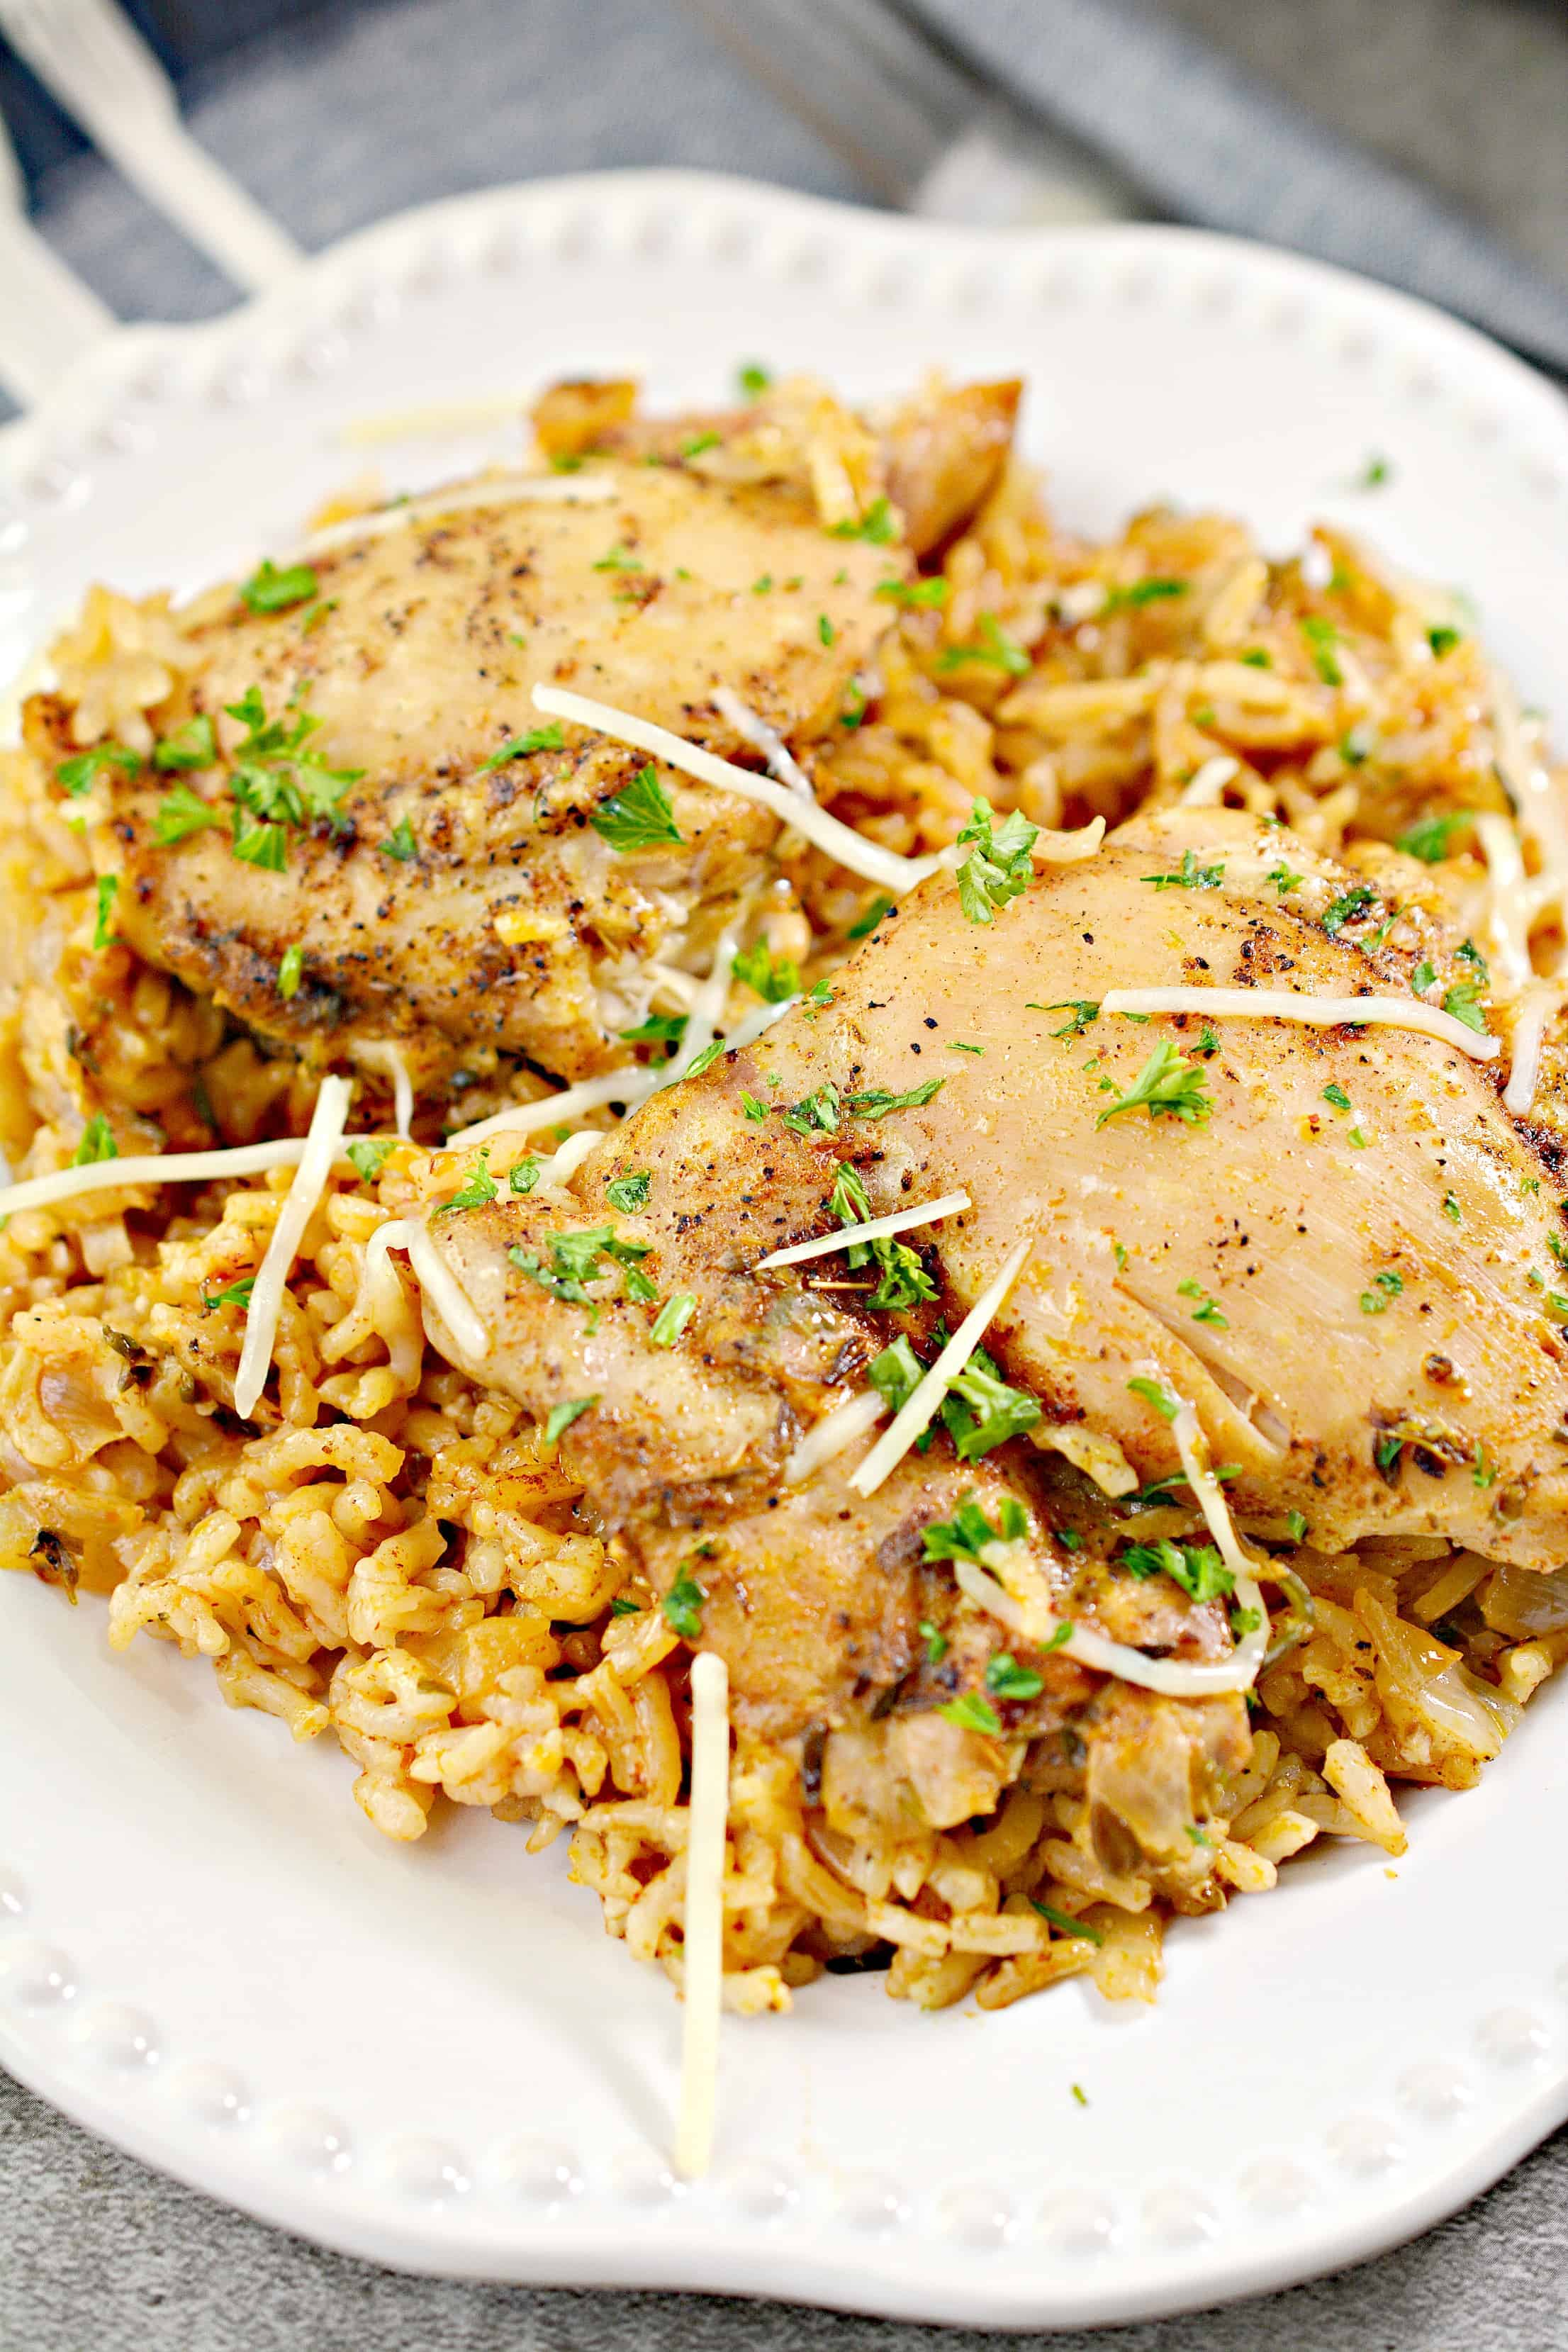 chicken with garlic sauce over rice